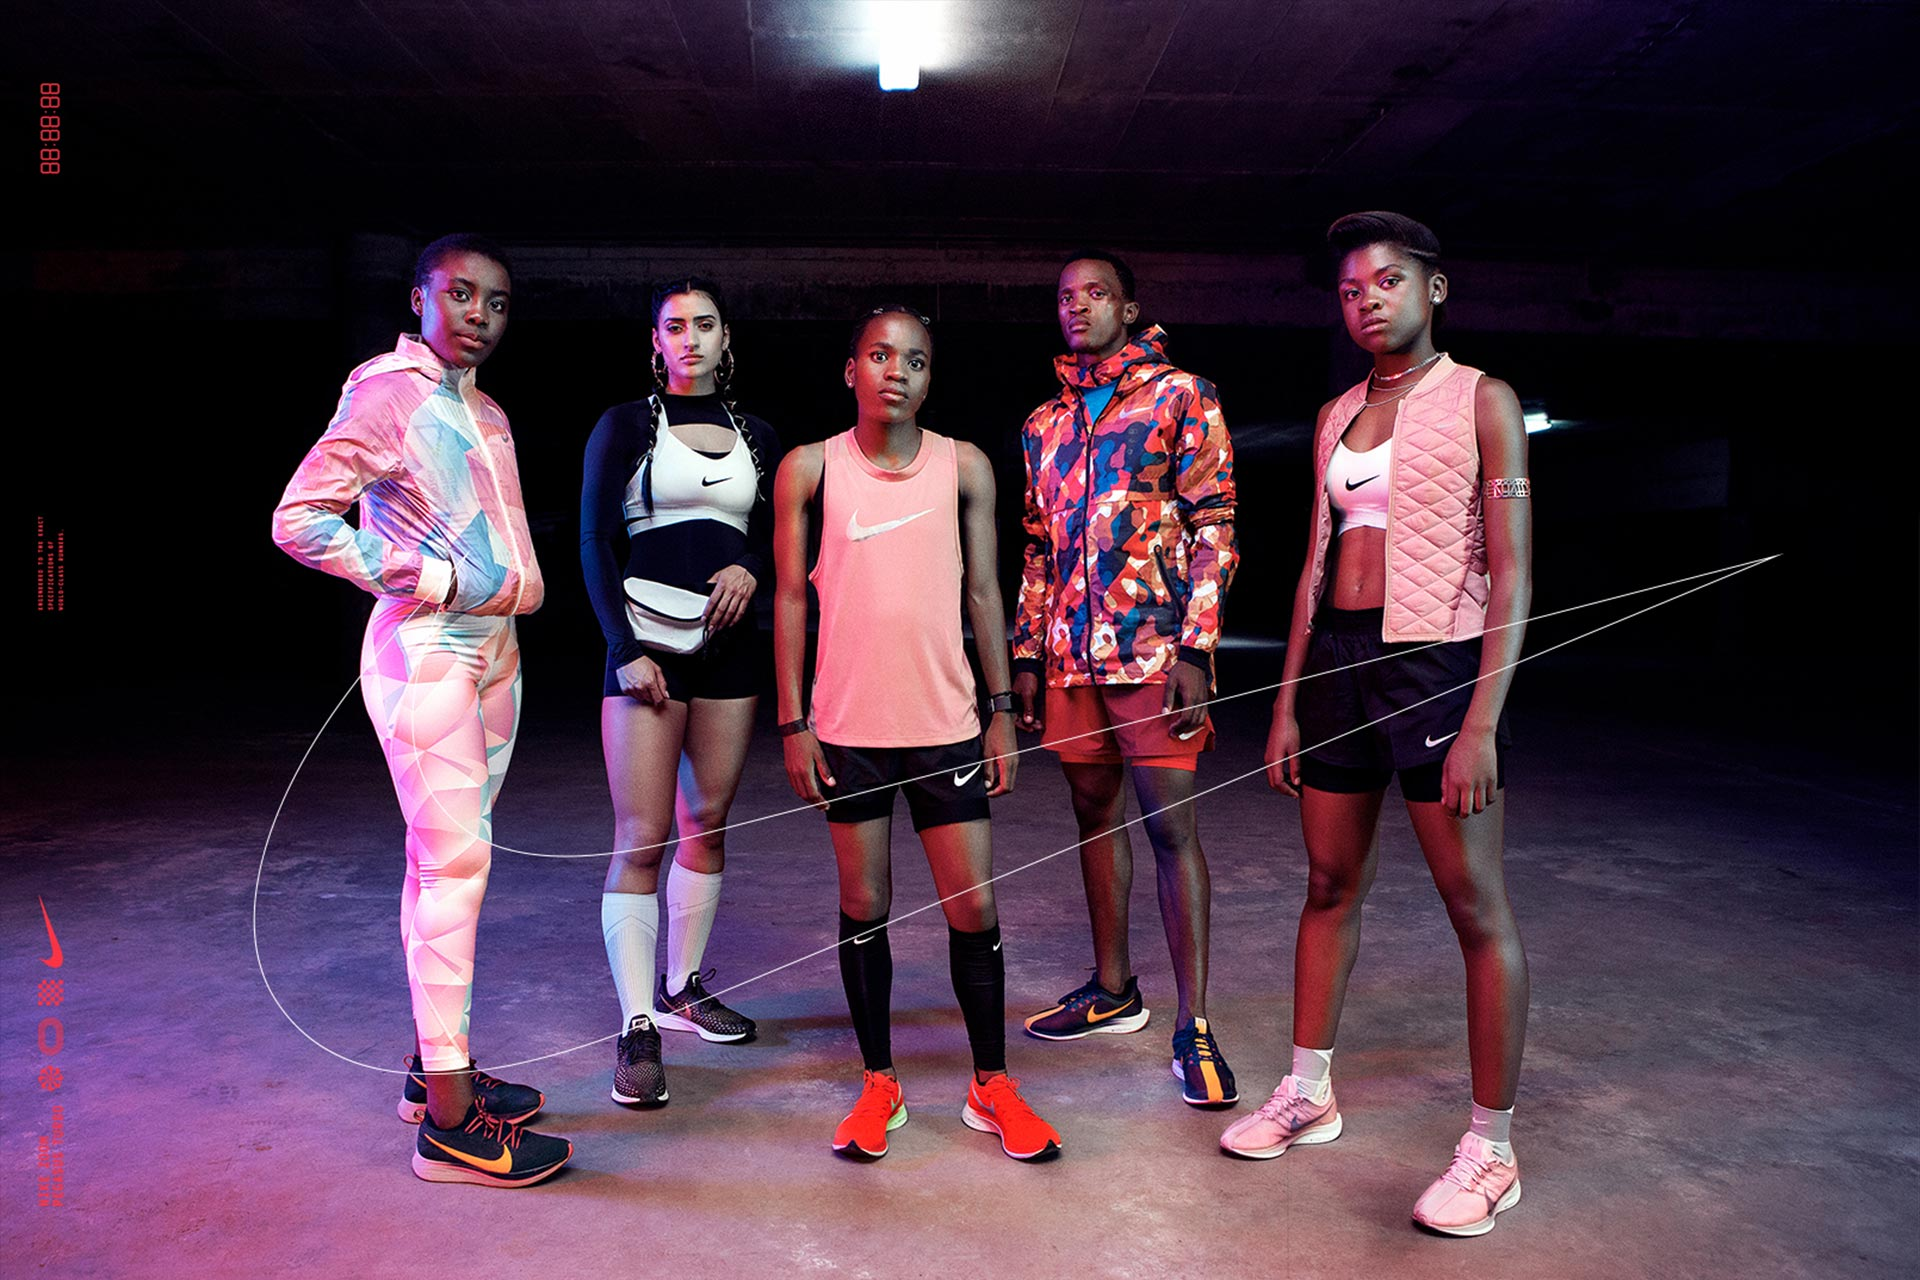 Nike models & athletes groupshot in basement